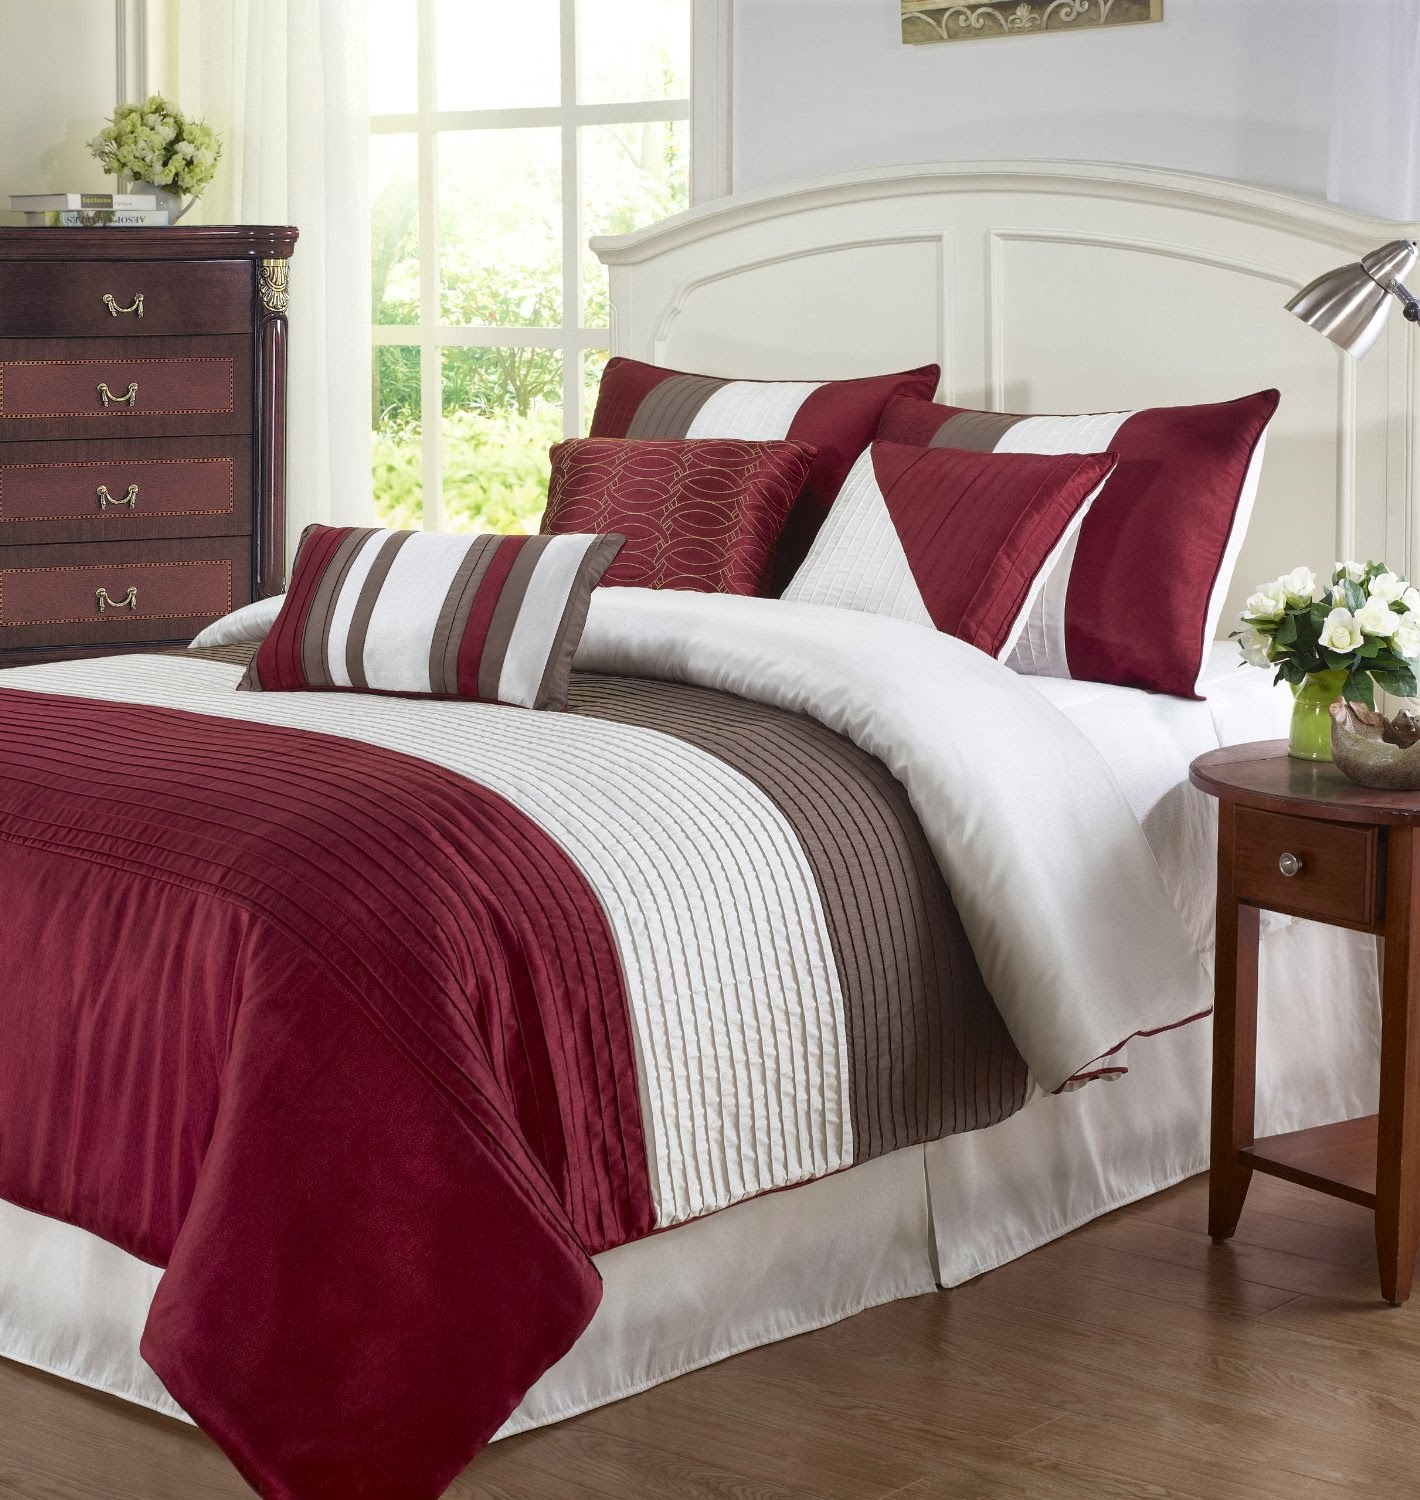 Brown and red bedding - Cozy Beddings Tayler 7 Piece Comforter Set